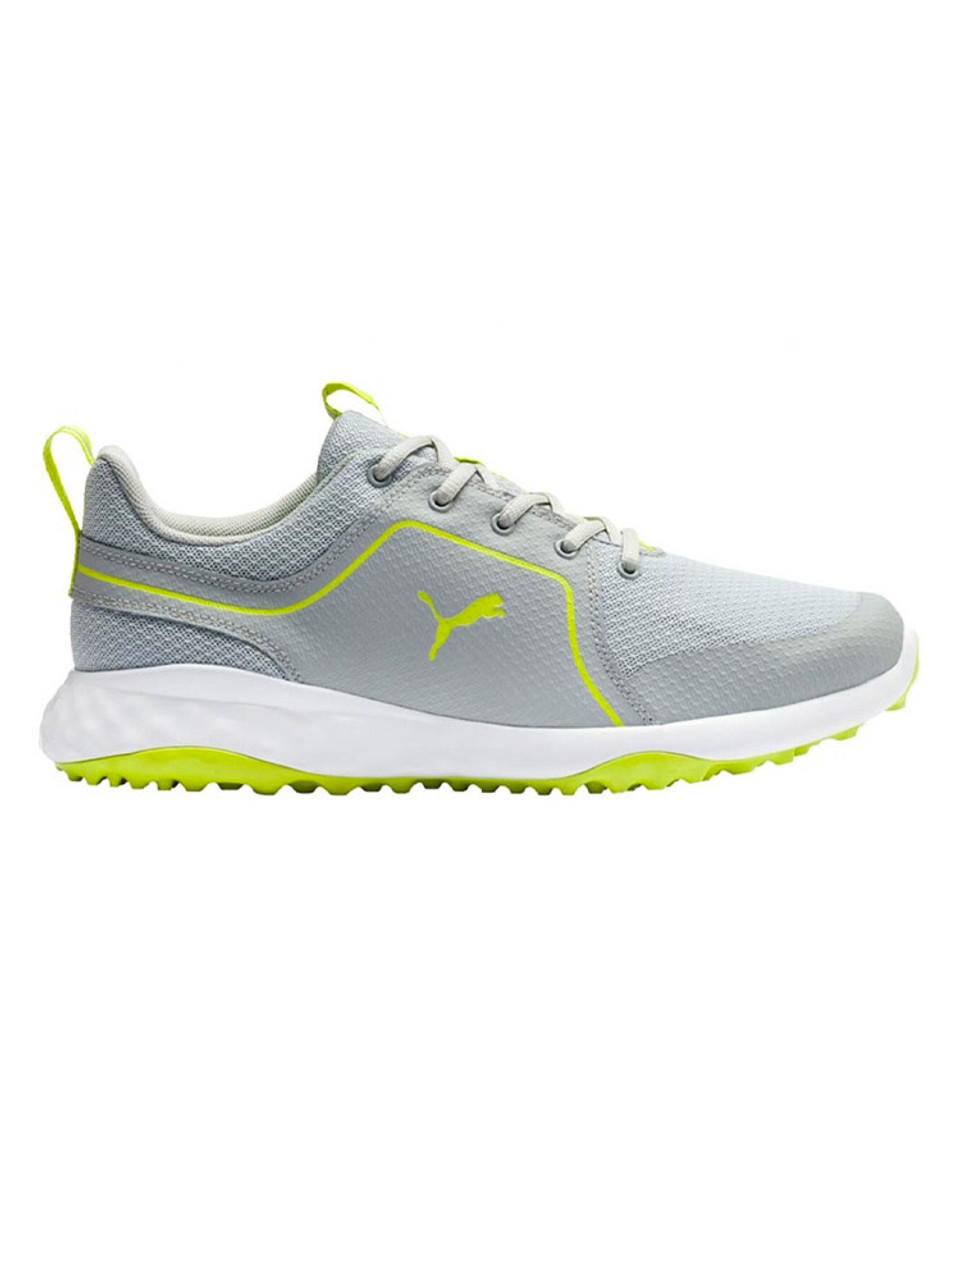 Puma Grip Fusion Sport 2.0 Golf Shoes Limestone